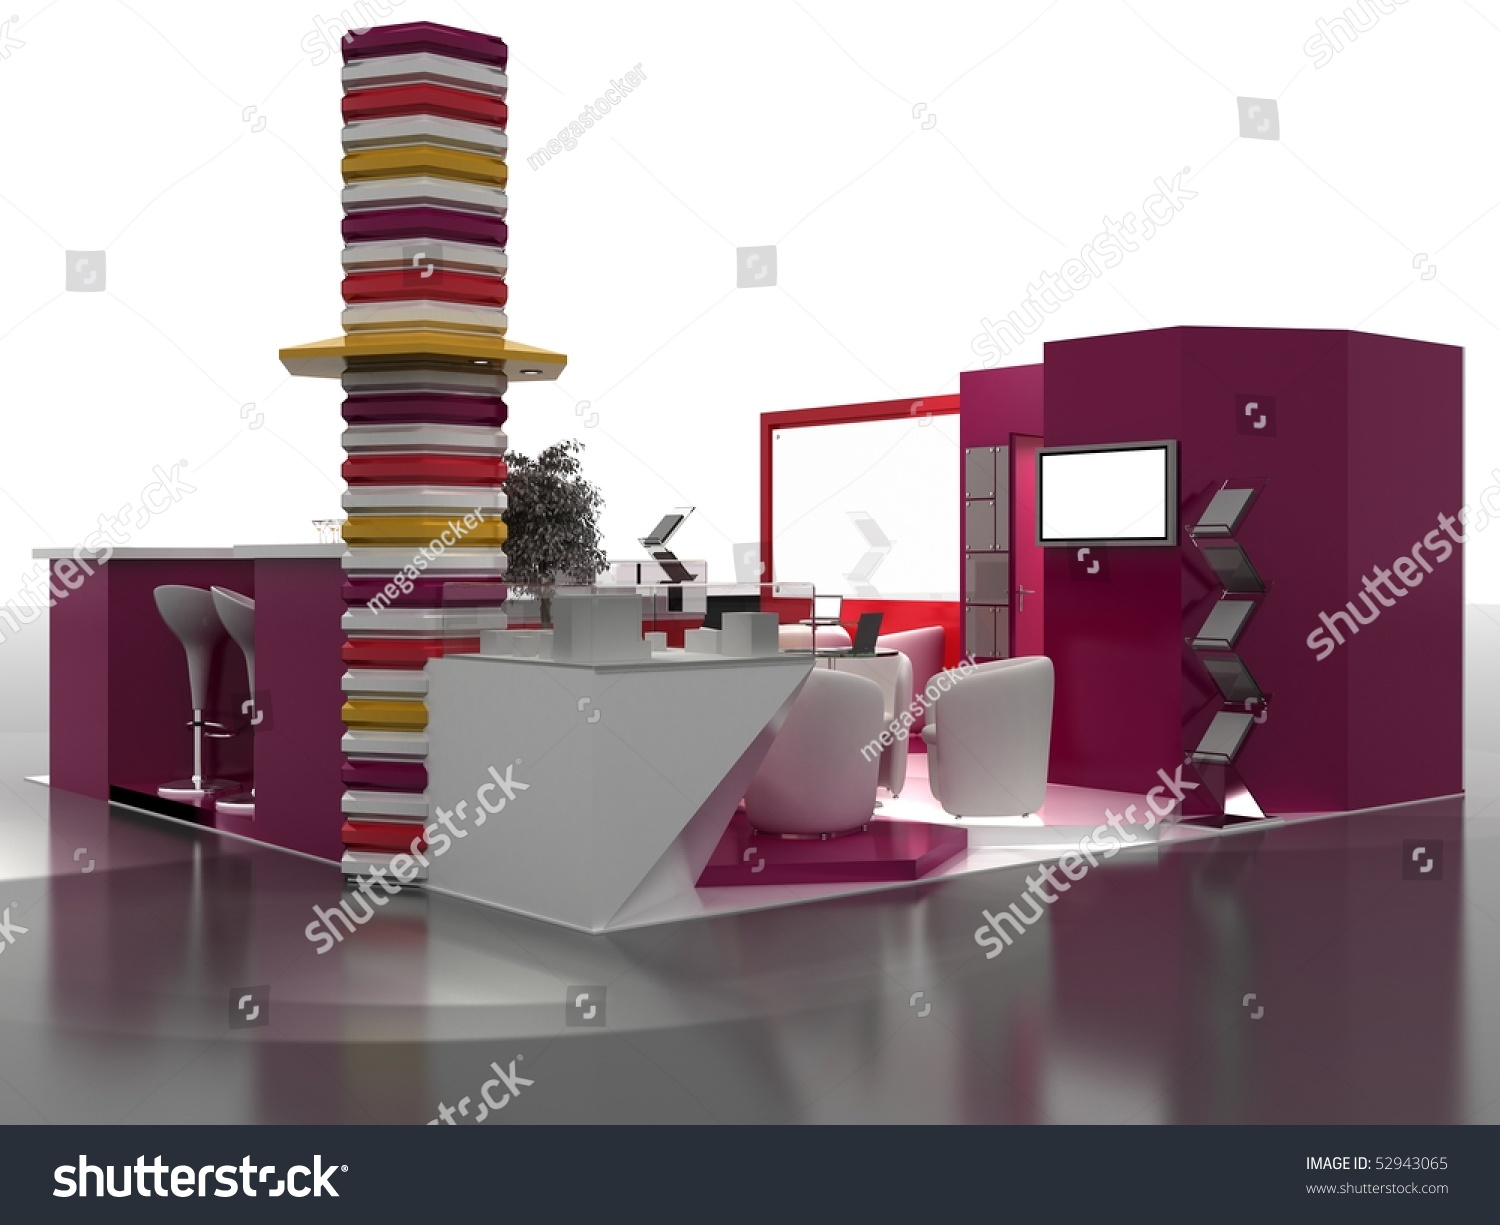 Simple Exhibition Stand Examples : Exhibition stand interior sample interiors series stock